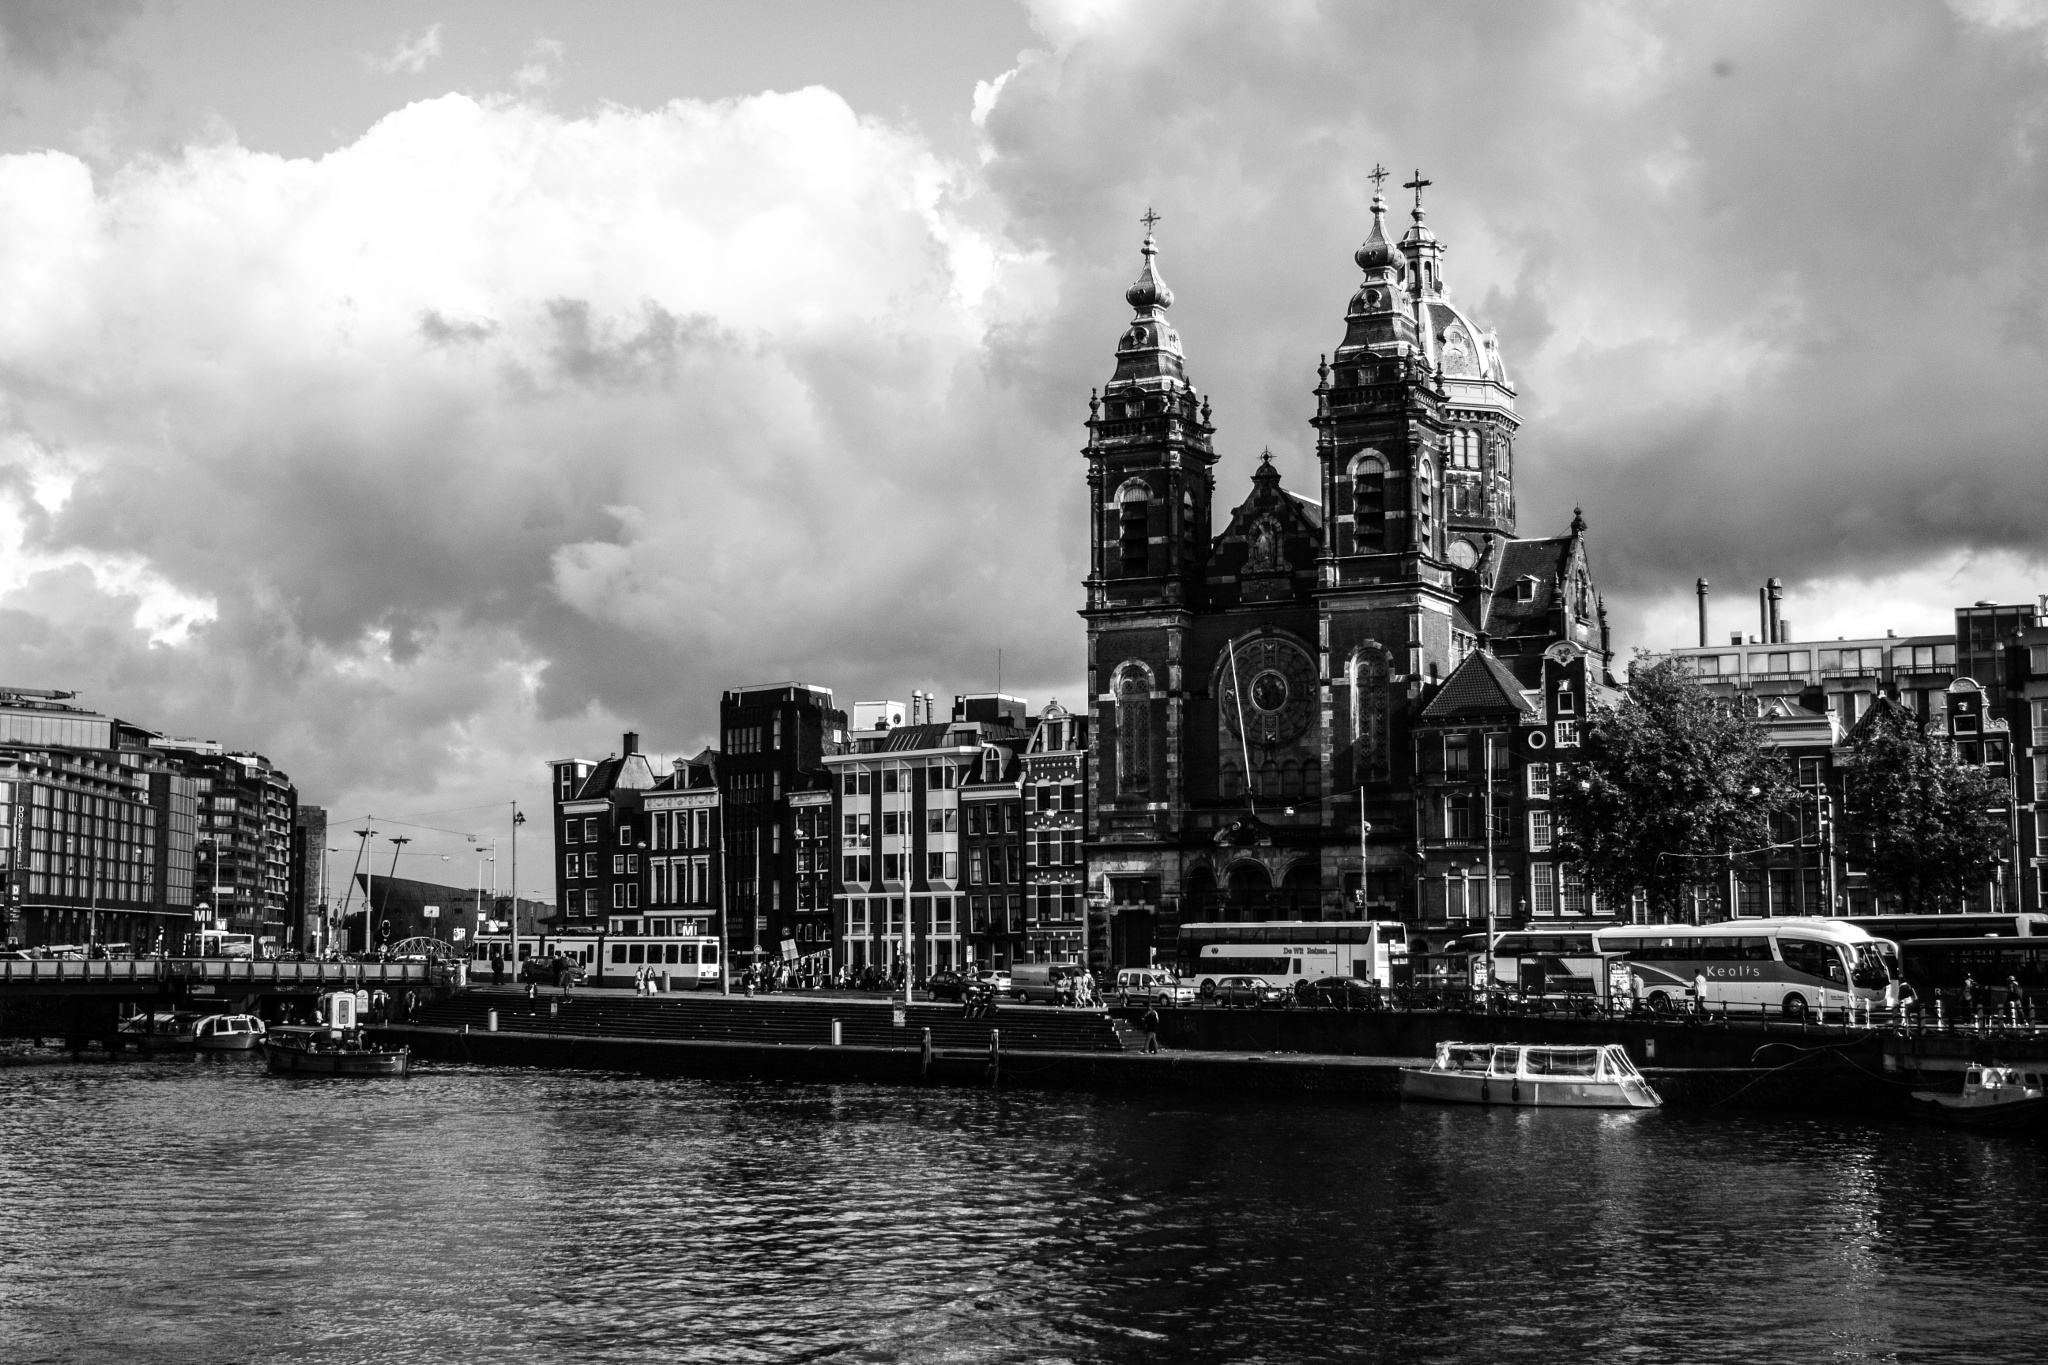 Amsterdam Churches by dduvall